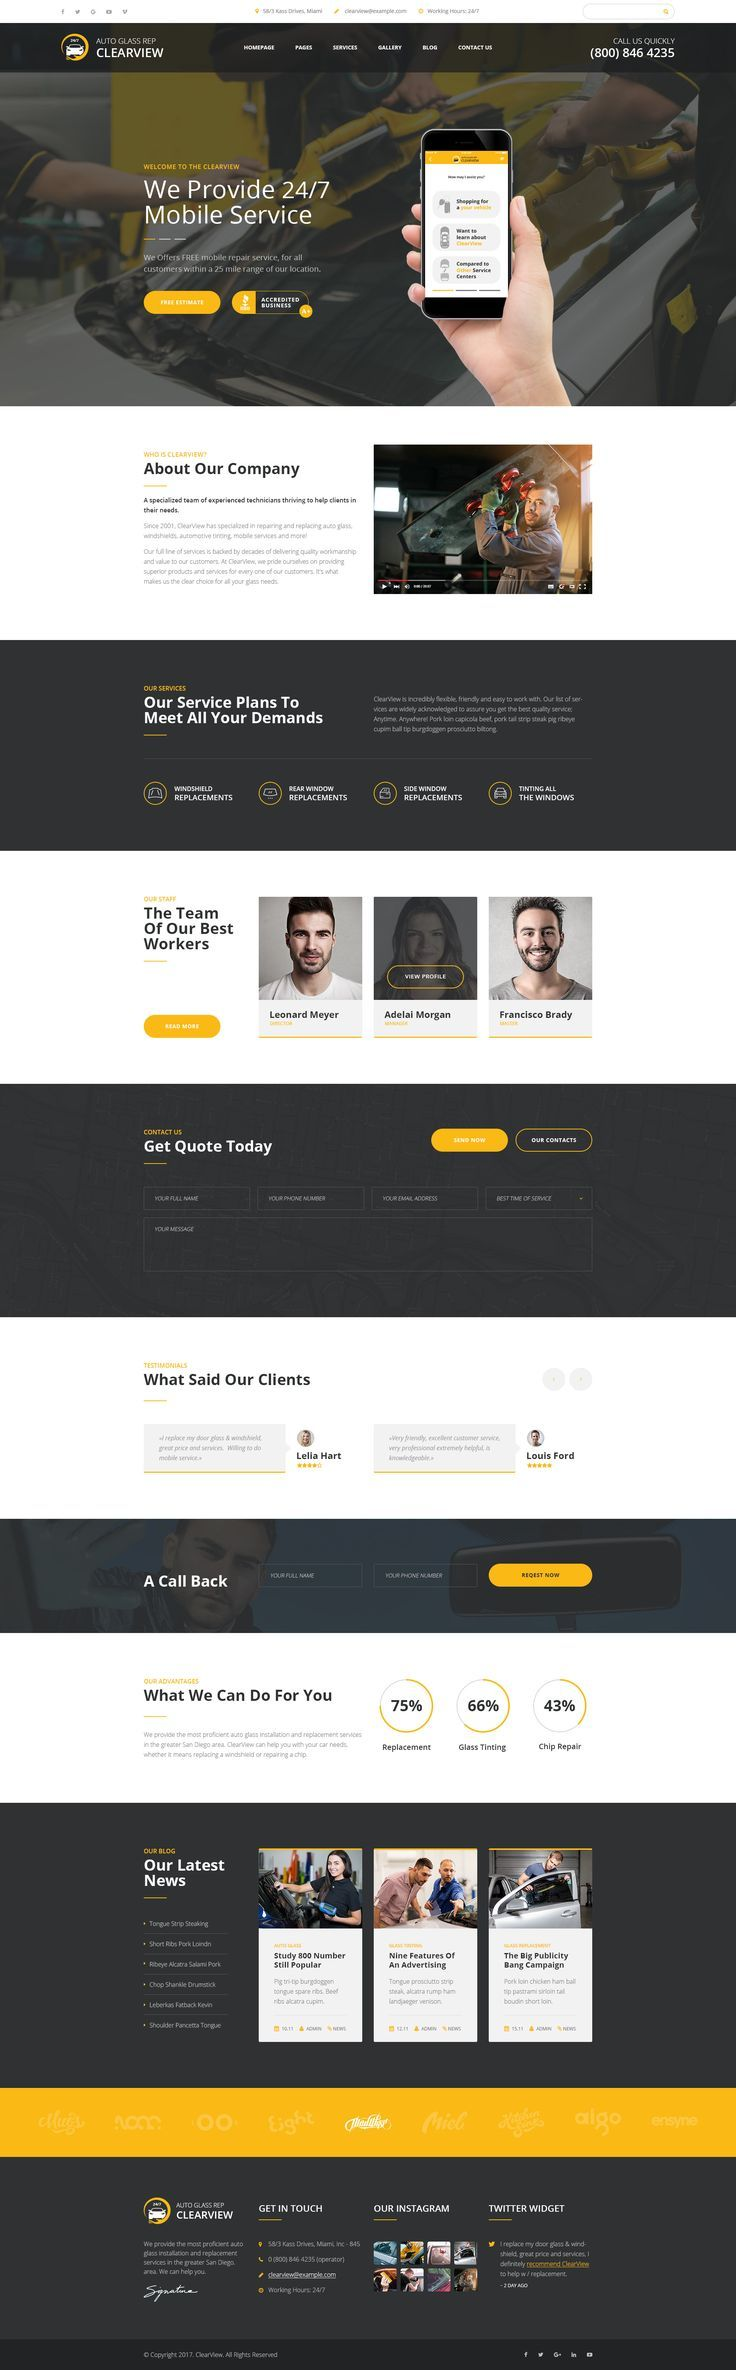 pin by susan moore on ui ux designs pinterest templates psd